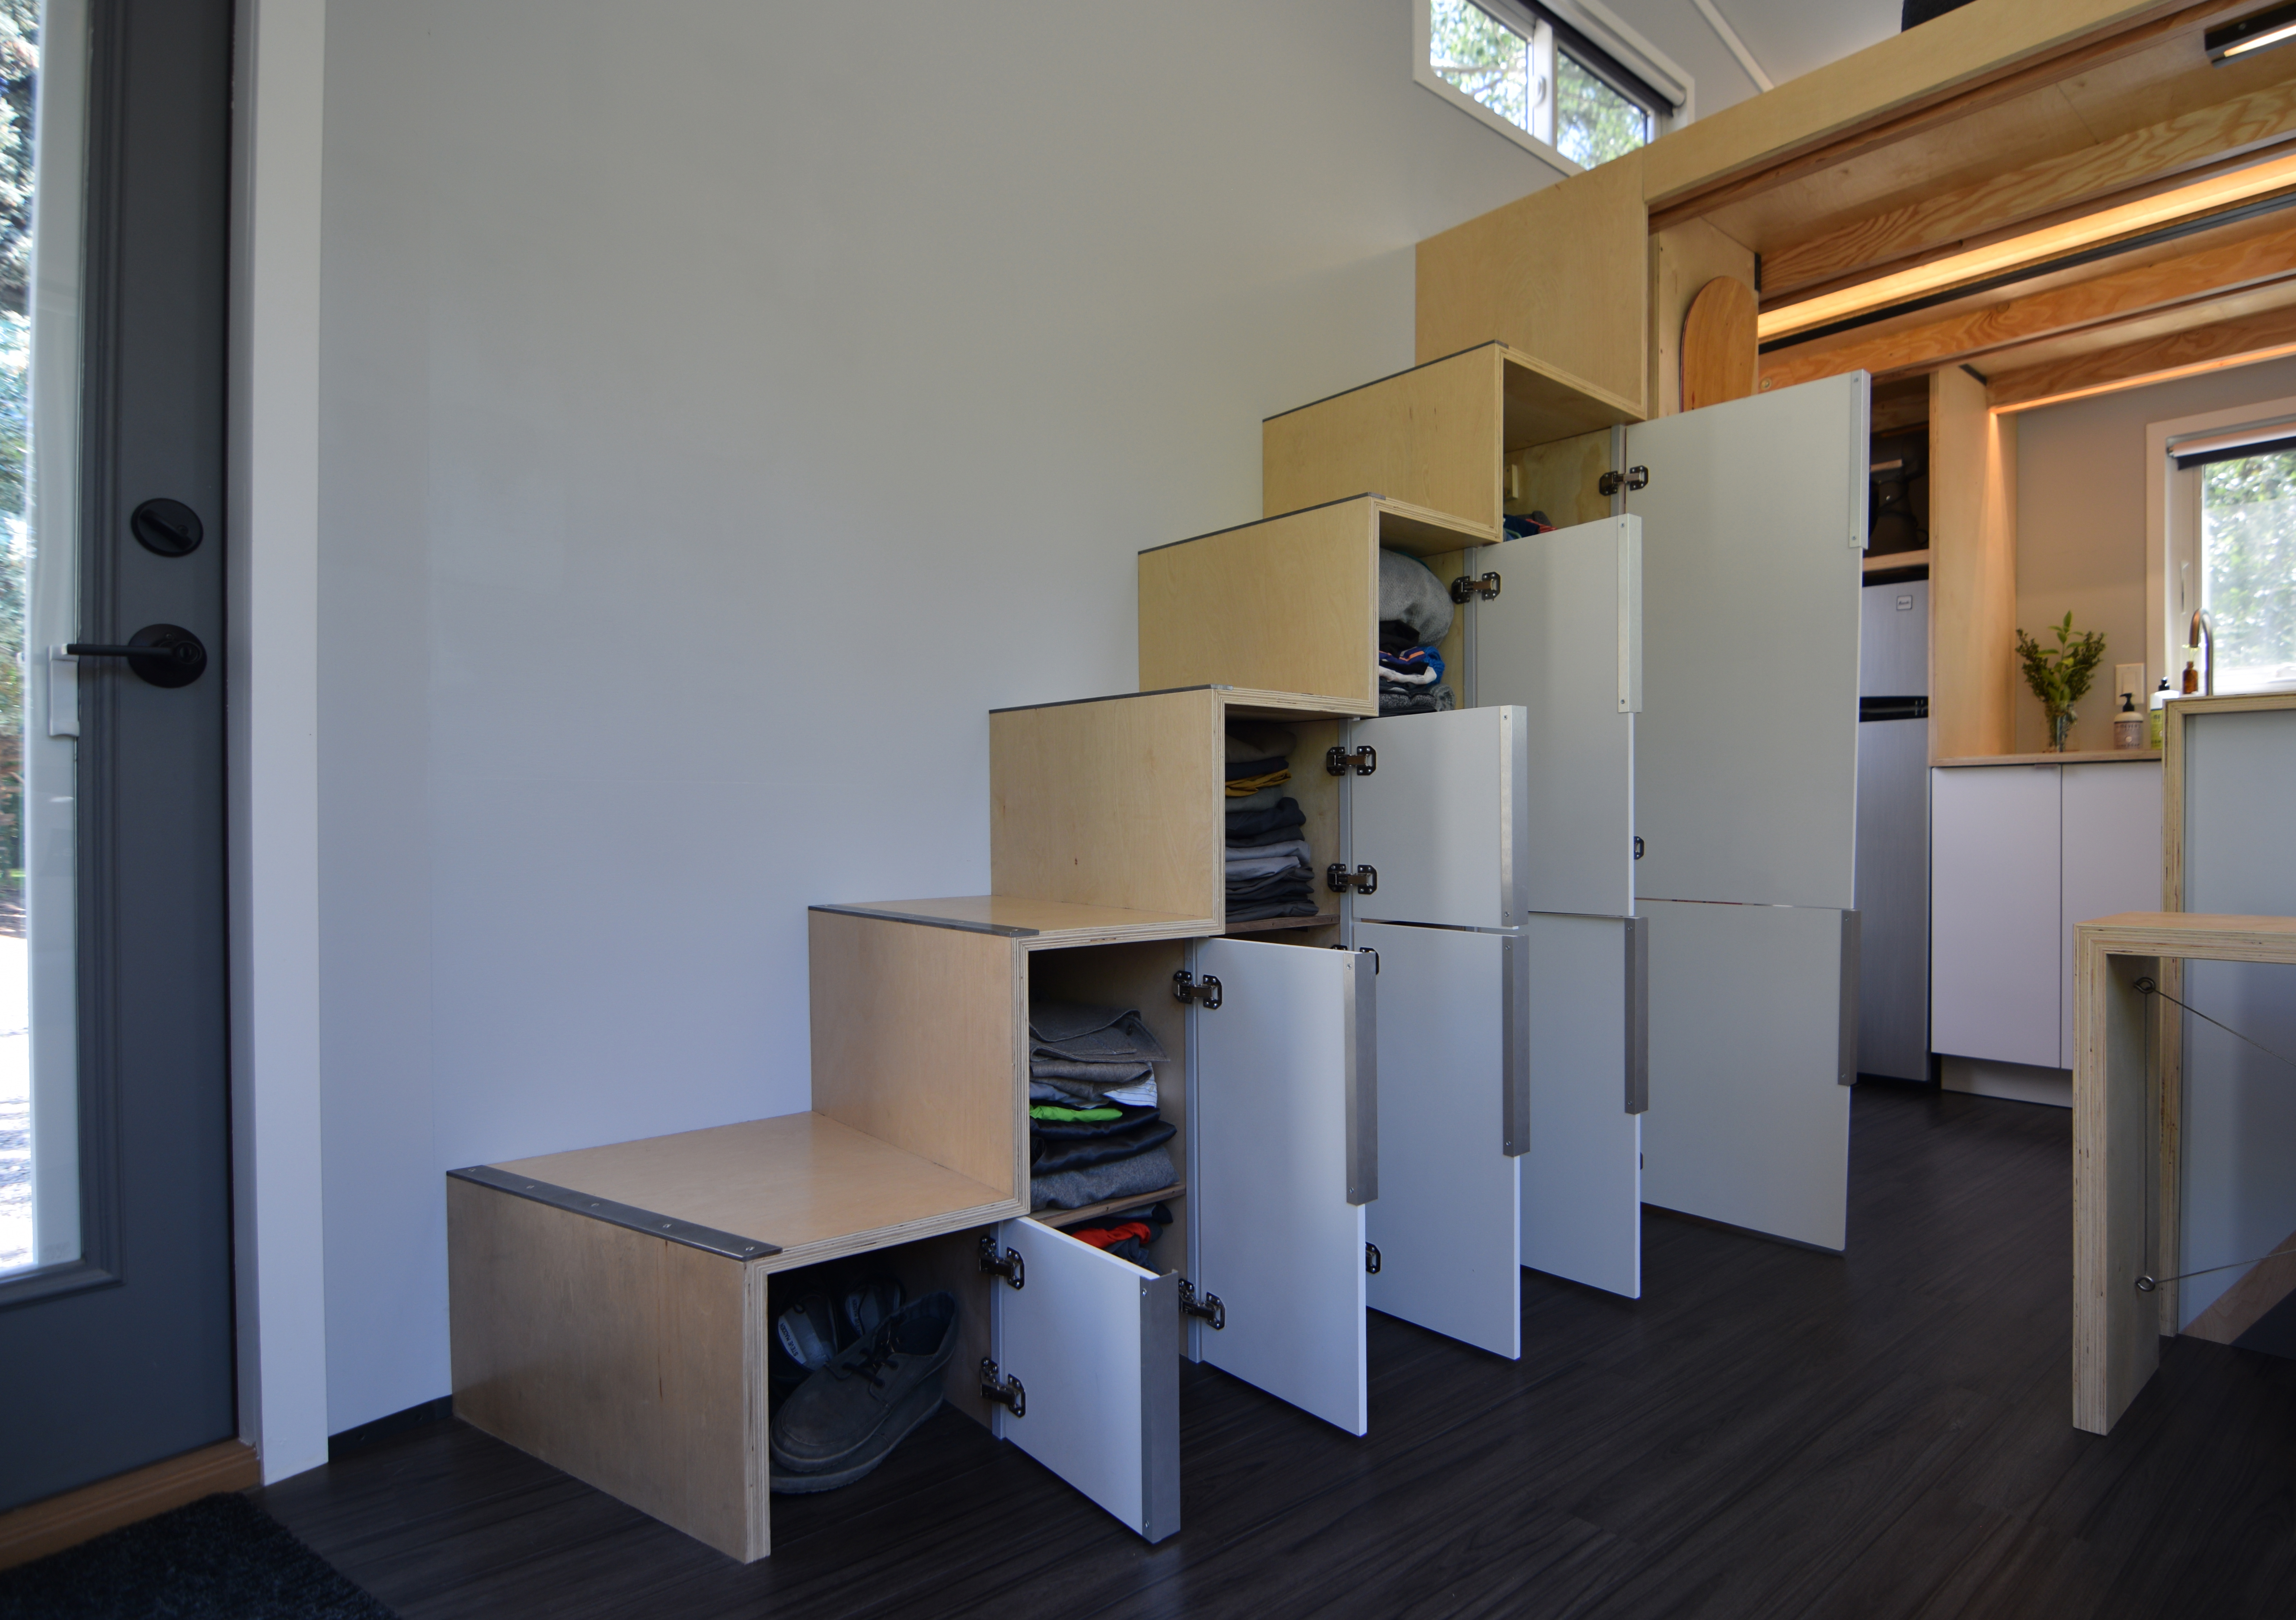 We Have Had Many Inquiries About The Dimensions And Construction Of Our  U0027AWARD WINNINGu0027 Tiny House Storage Stairs So This Post Will Cover Those Two  Topics ...